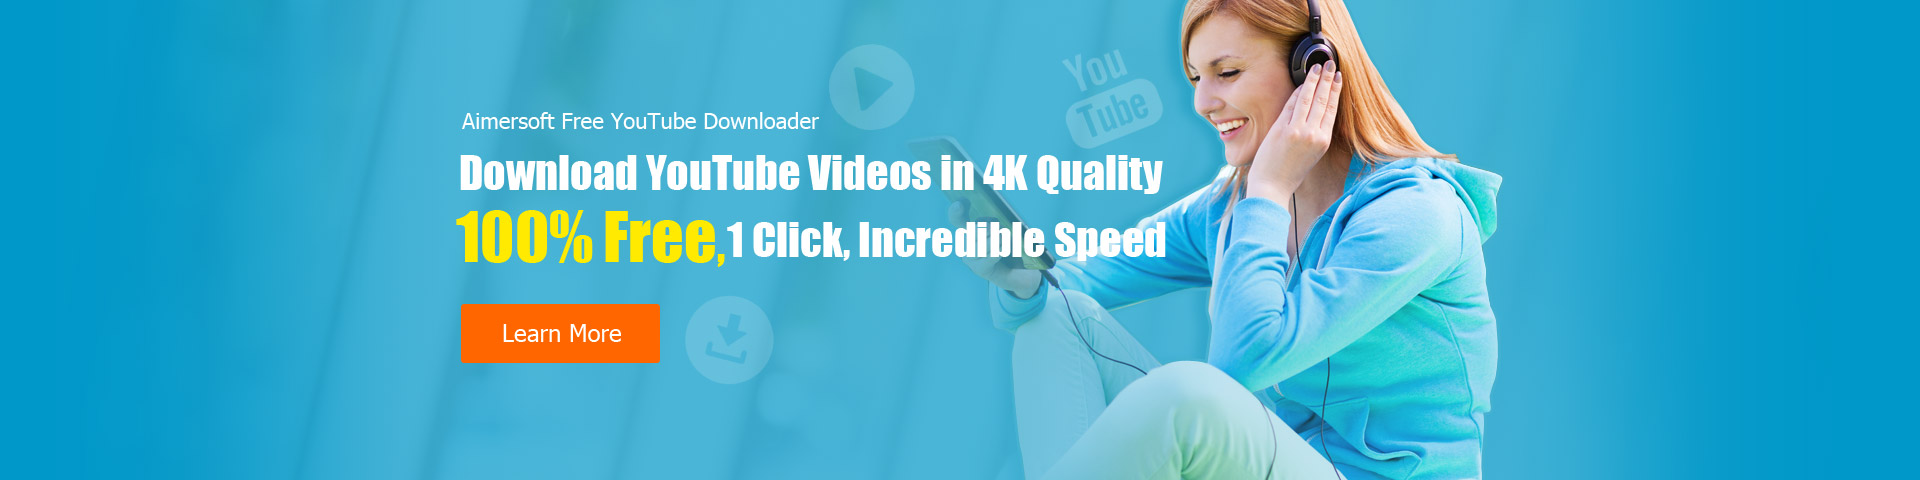 Aimersoft Free YouTube Downloader